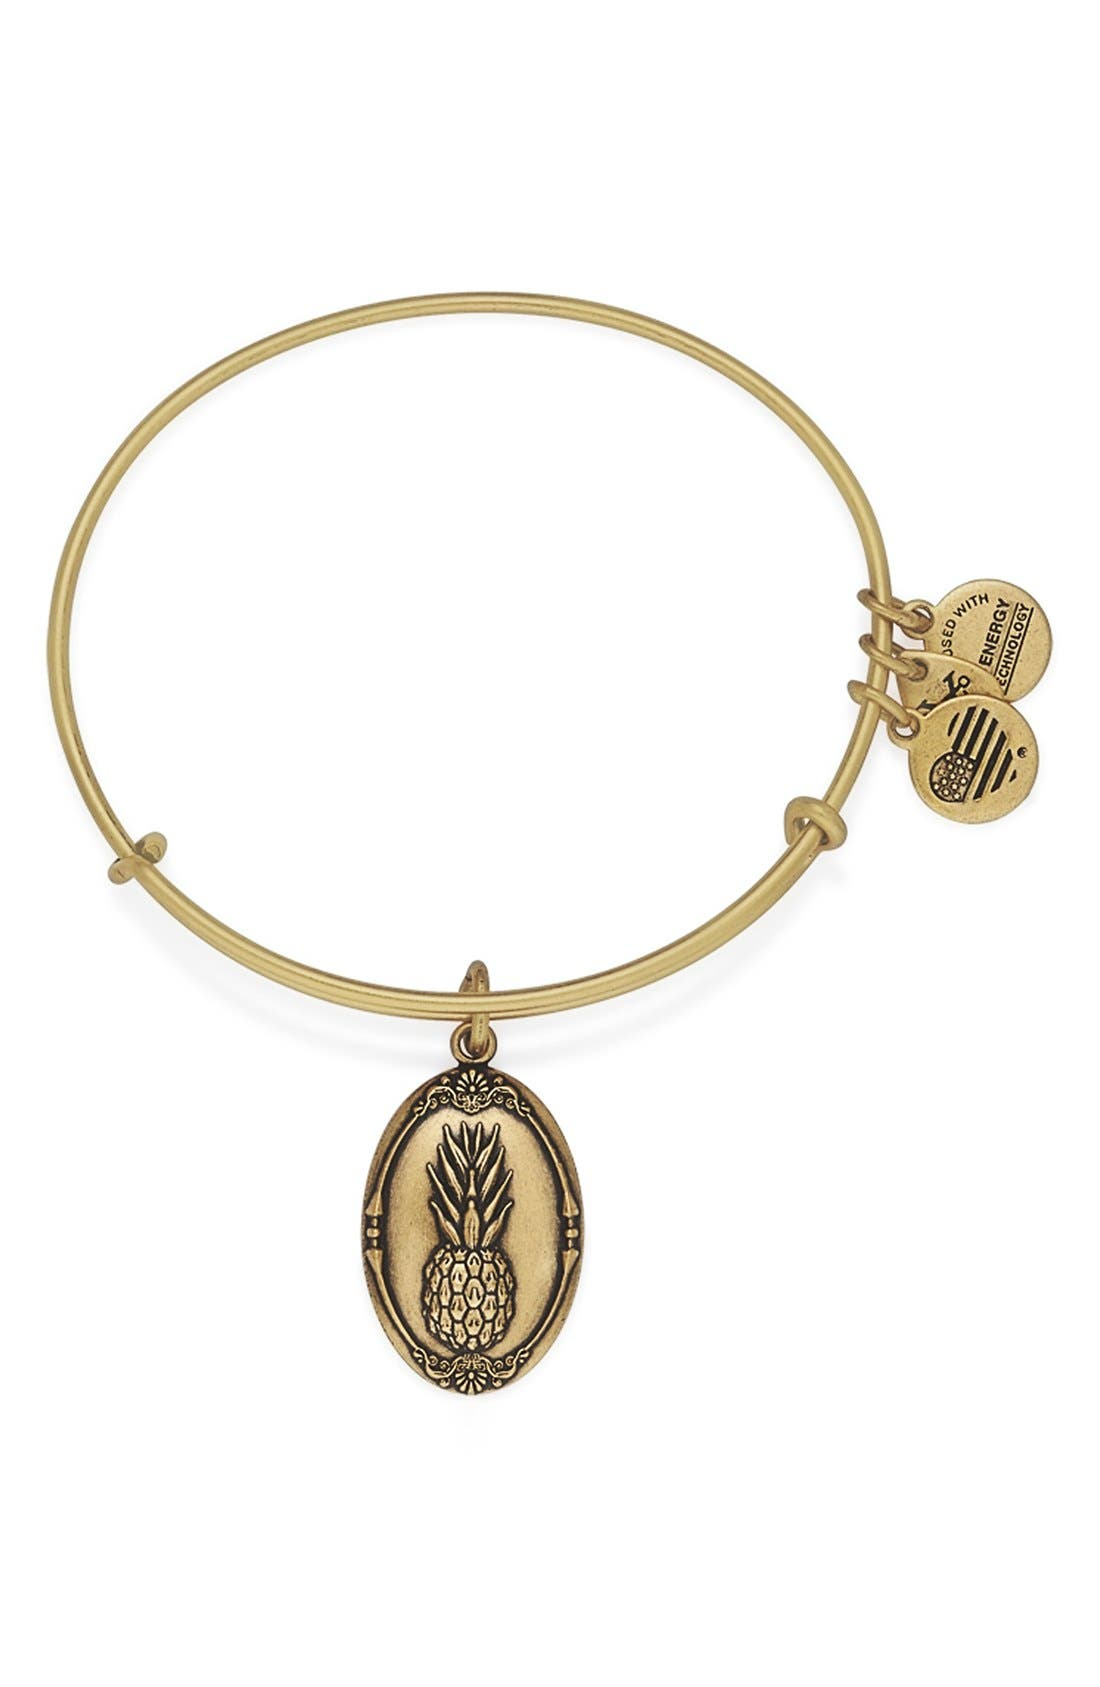 Alternate Image 1 Selected - Alex and Ani 'Pineapple' Adjustable Wire Bangle